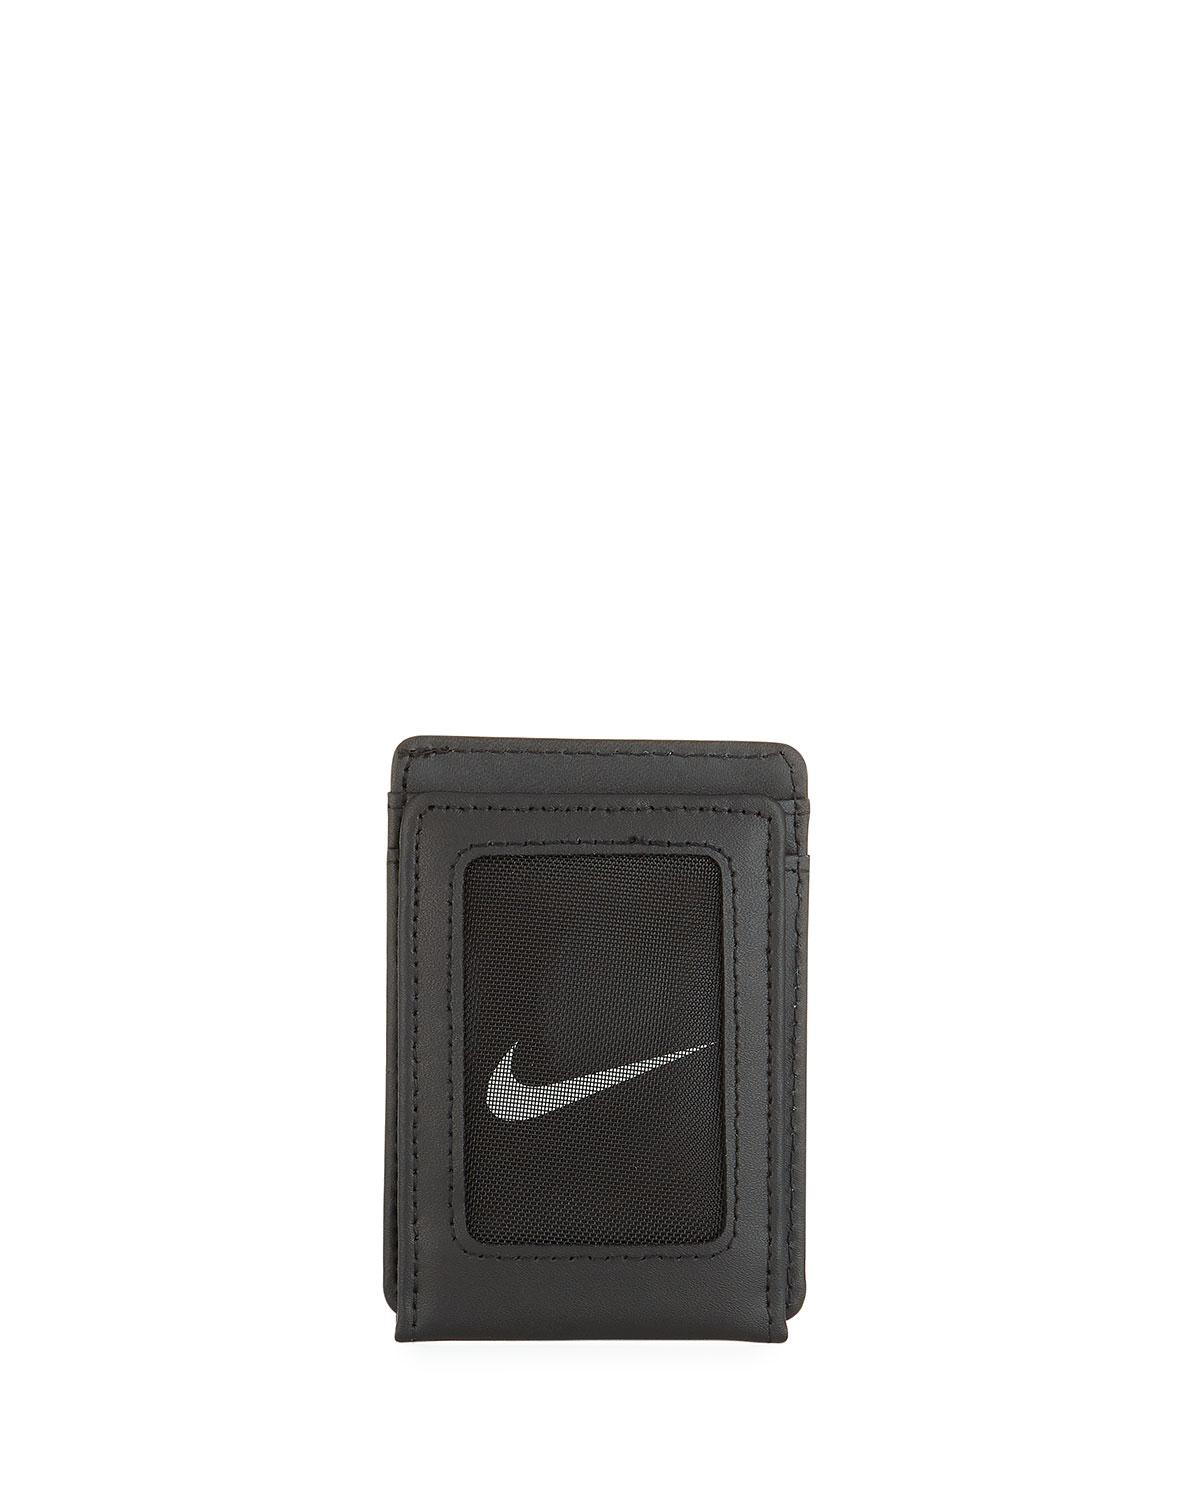 6c1627430c Nike Men's Block Leather Wallet in Black for Men - Lyst